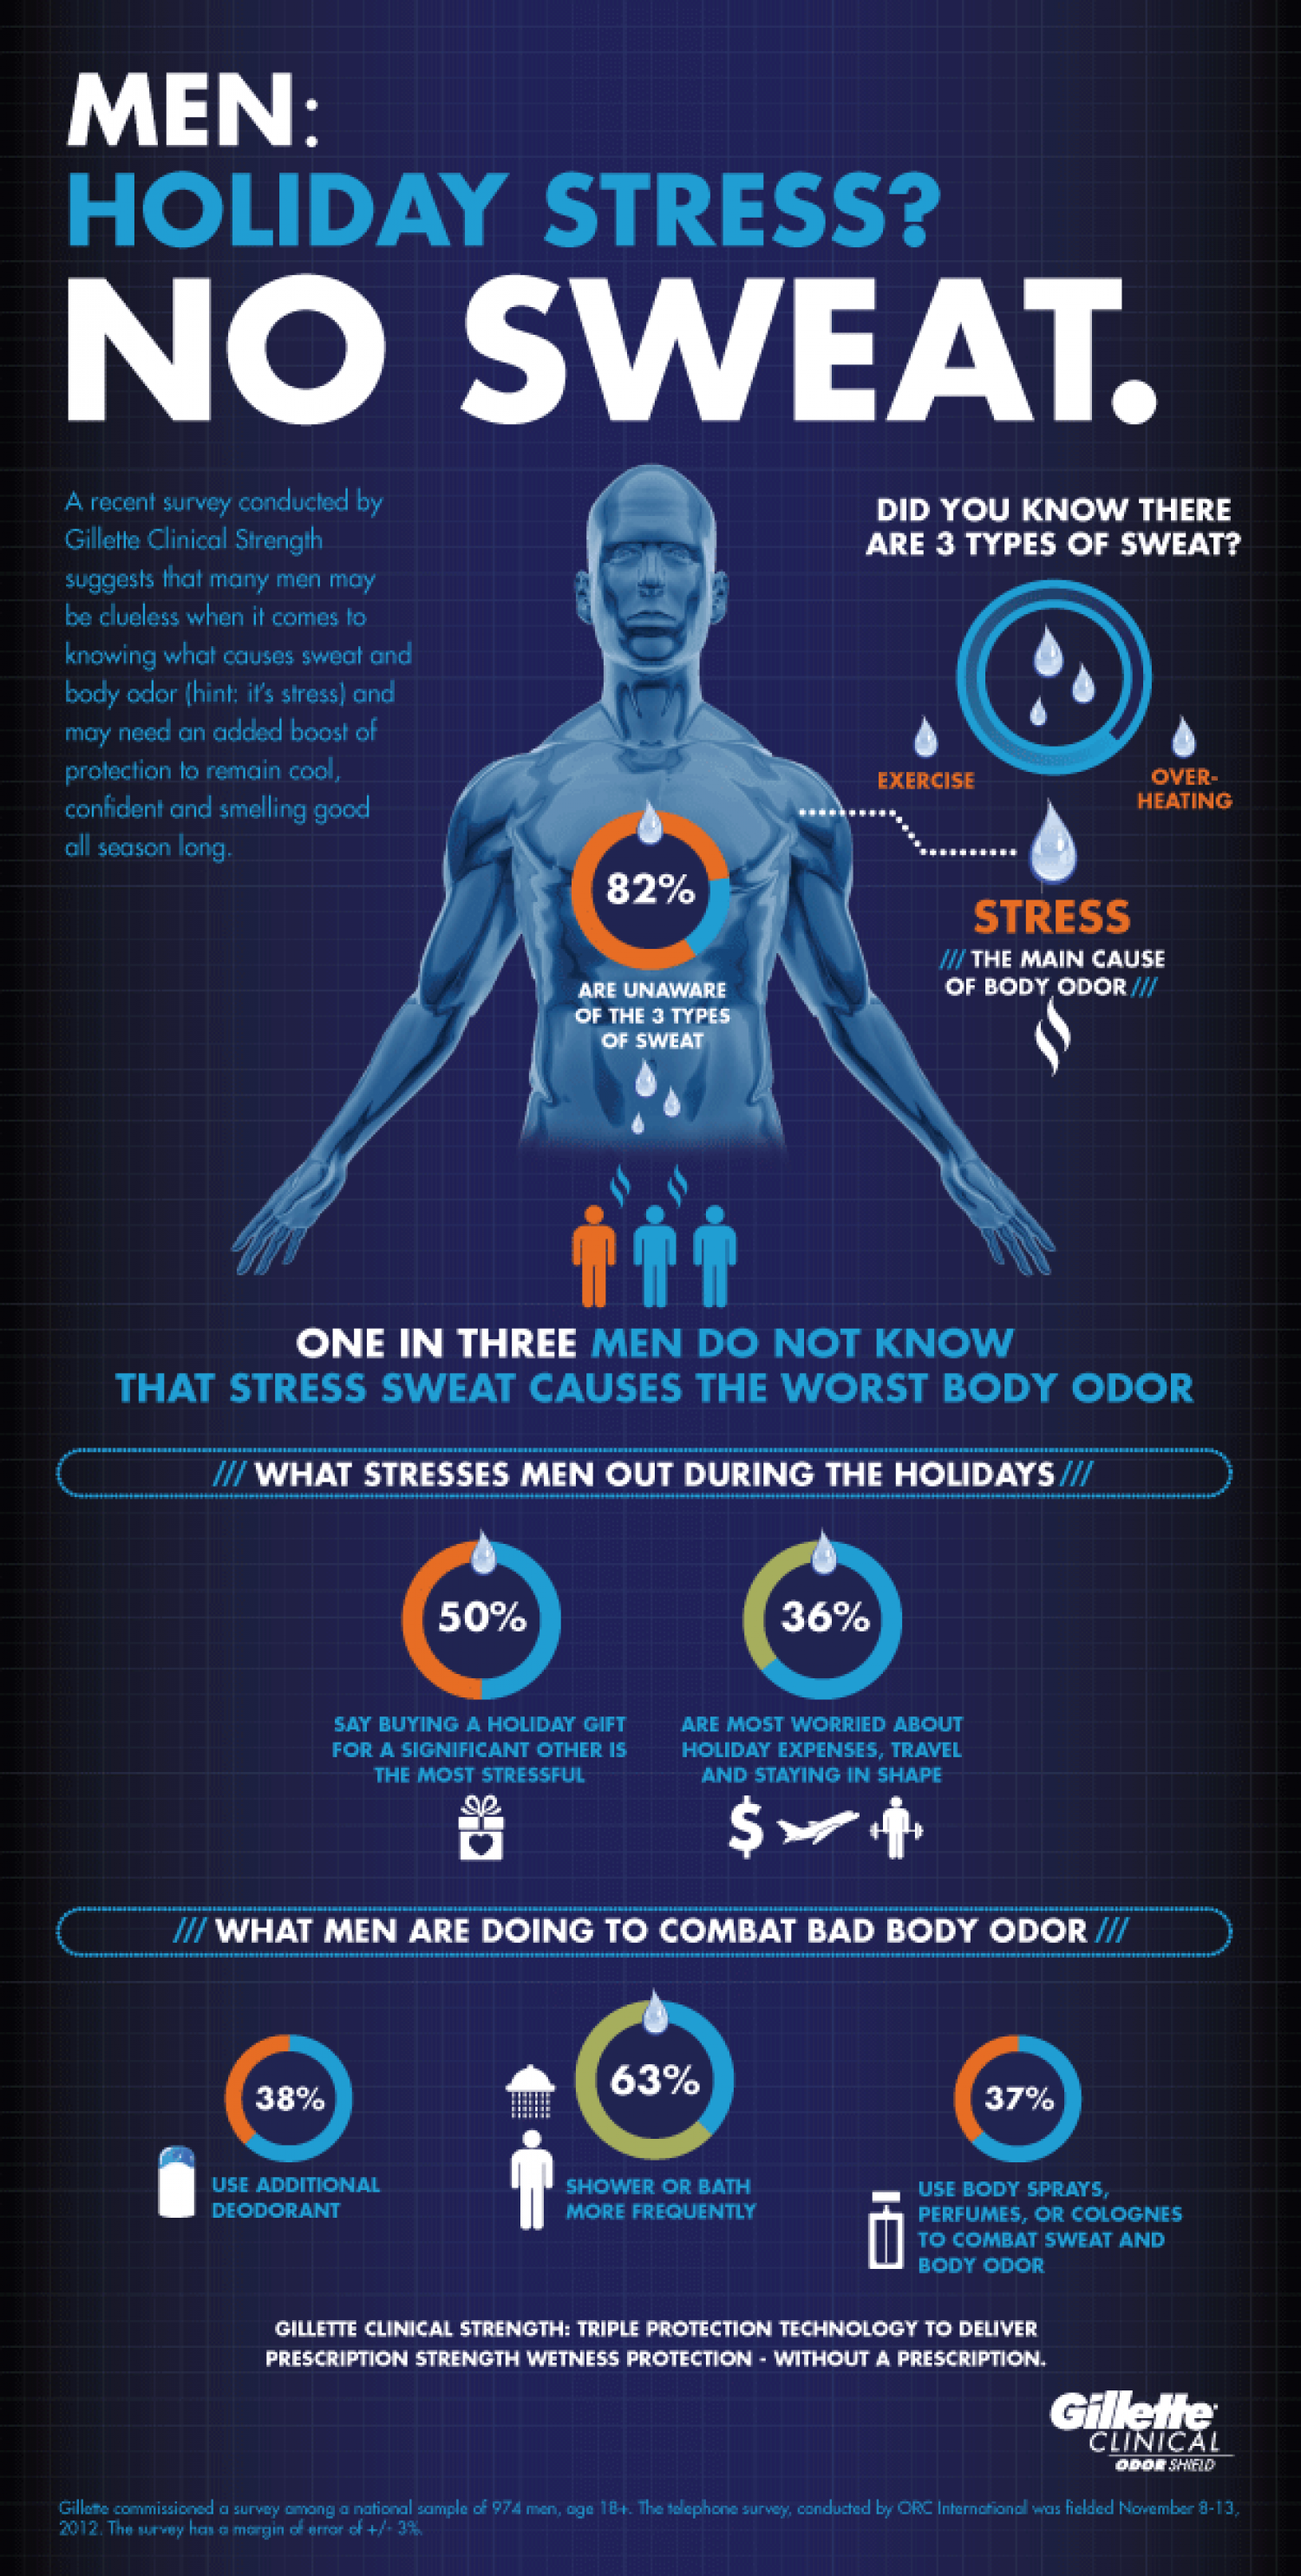 Men: Holiday Stress? No Sweat Infographic